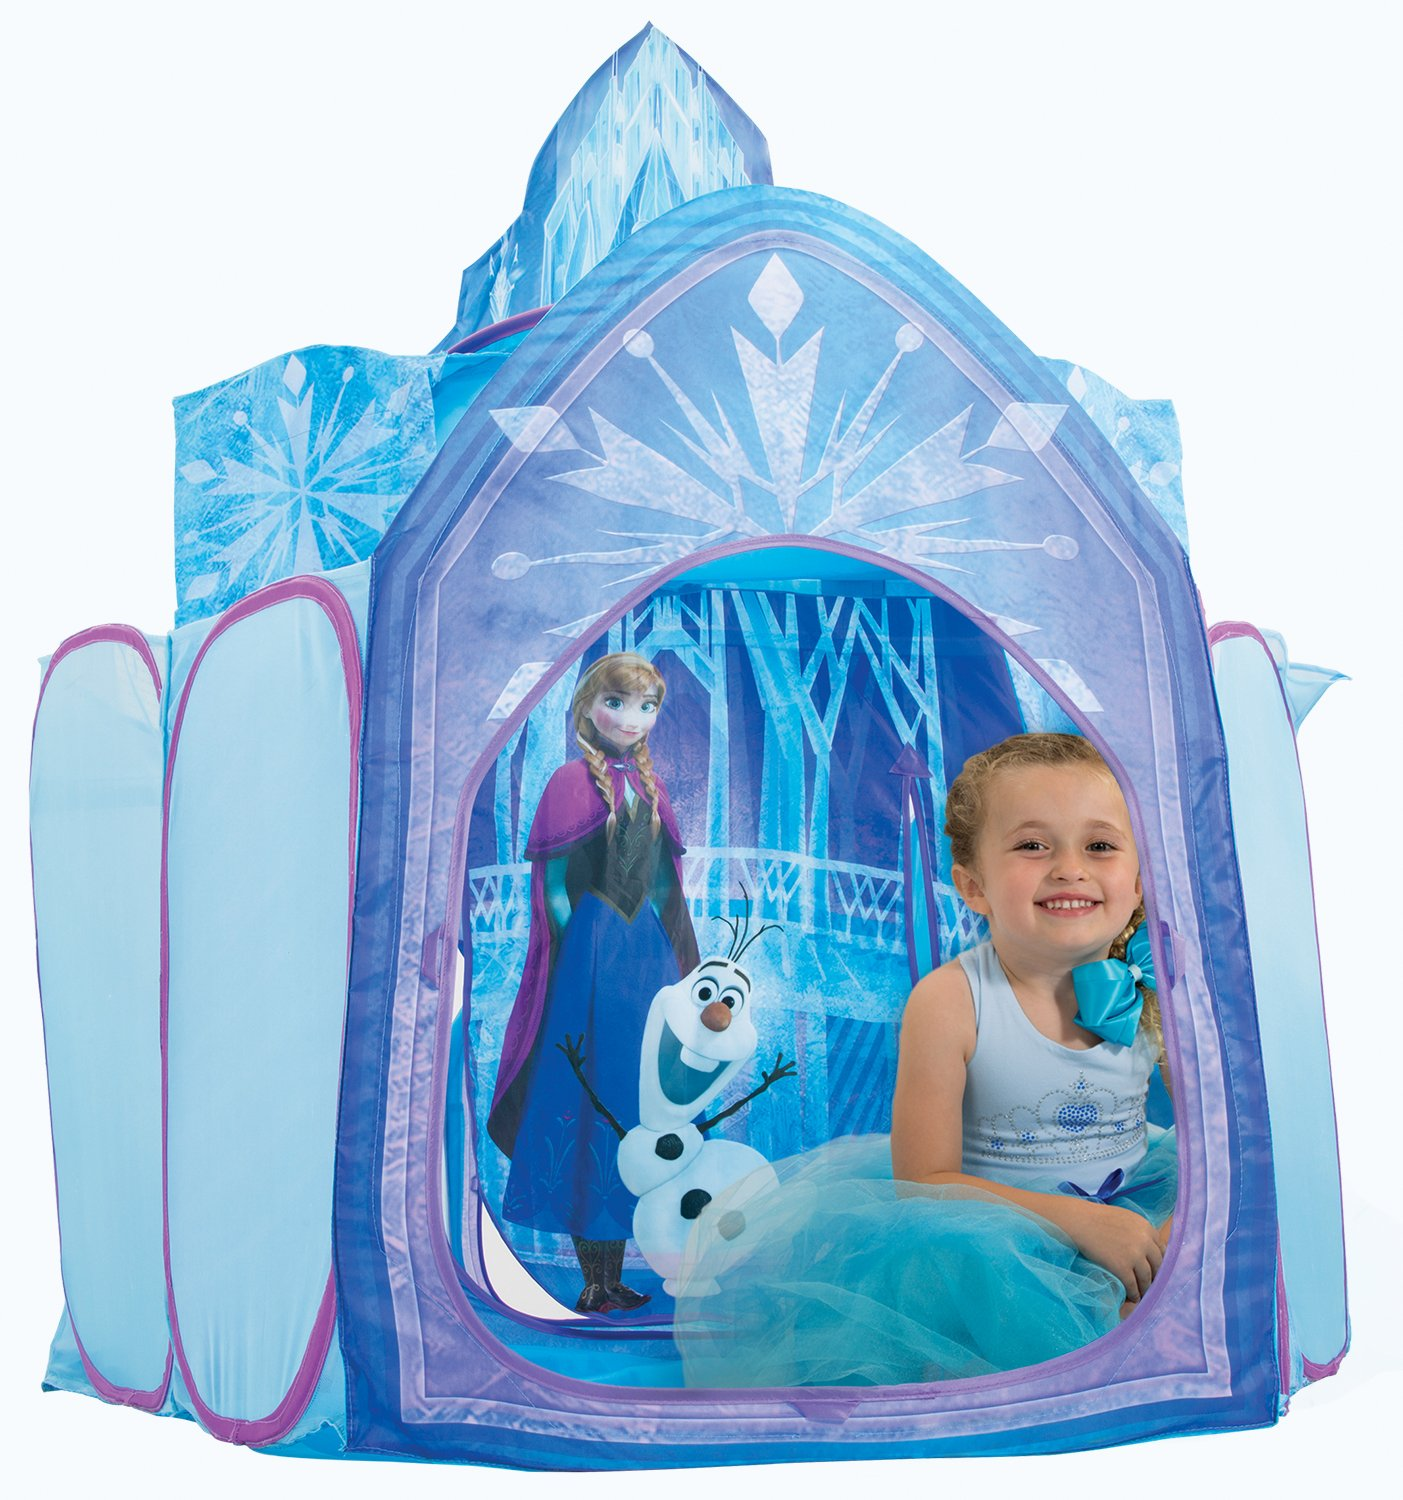 Playhut Disneyu0027s Frozen - Elsau0027s Ice Castle Play Tents - Amazon Canada  sc 1 st  Amazon.ca & Playhut Disneyu0027s Frozen - Elsau0027s Ice Castle Play Tents - Amazon ...